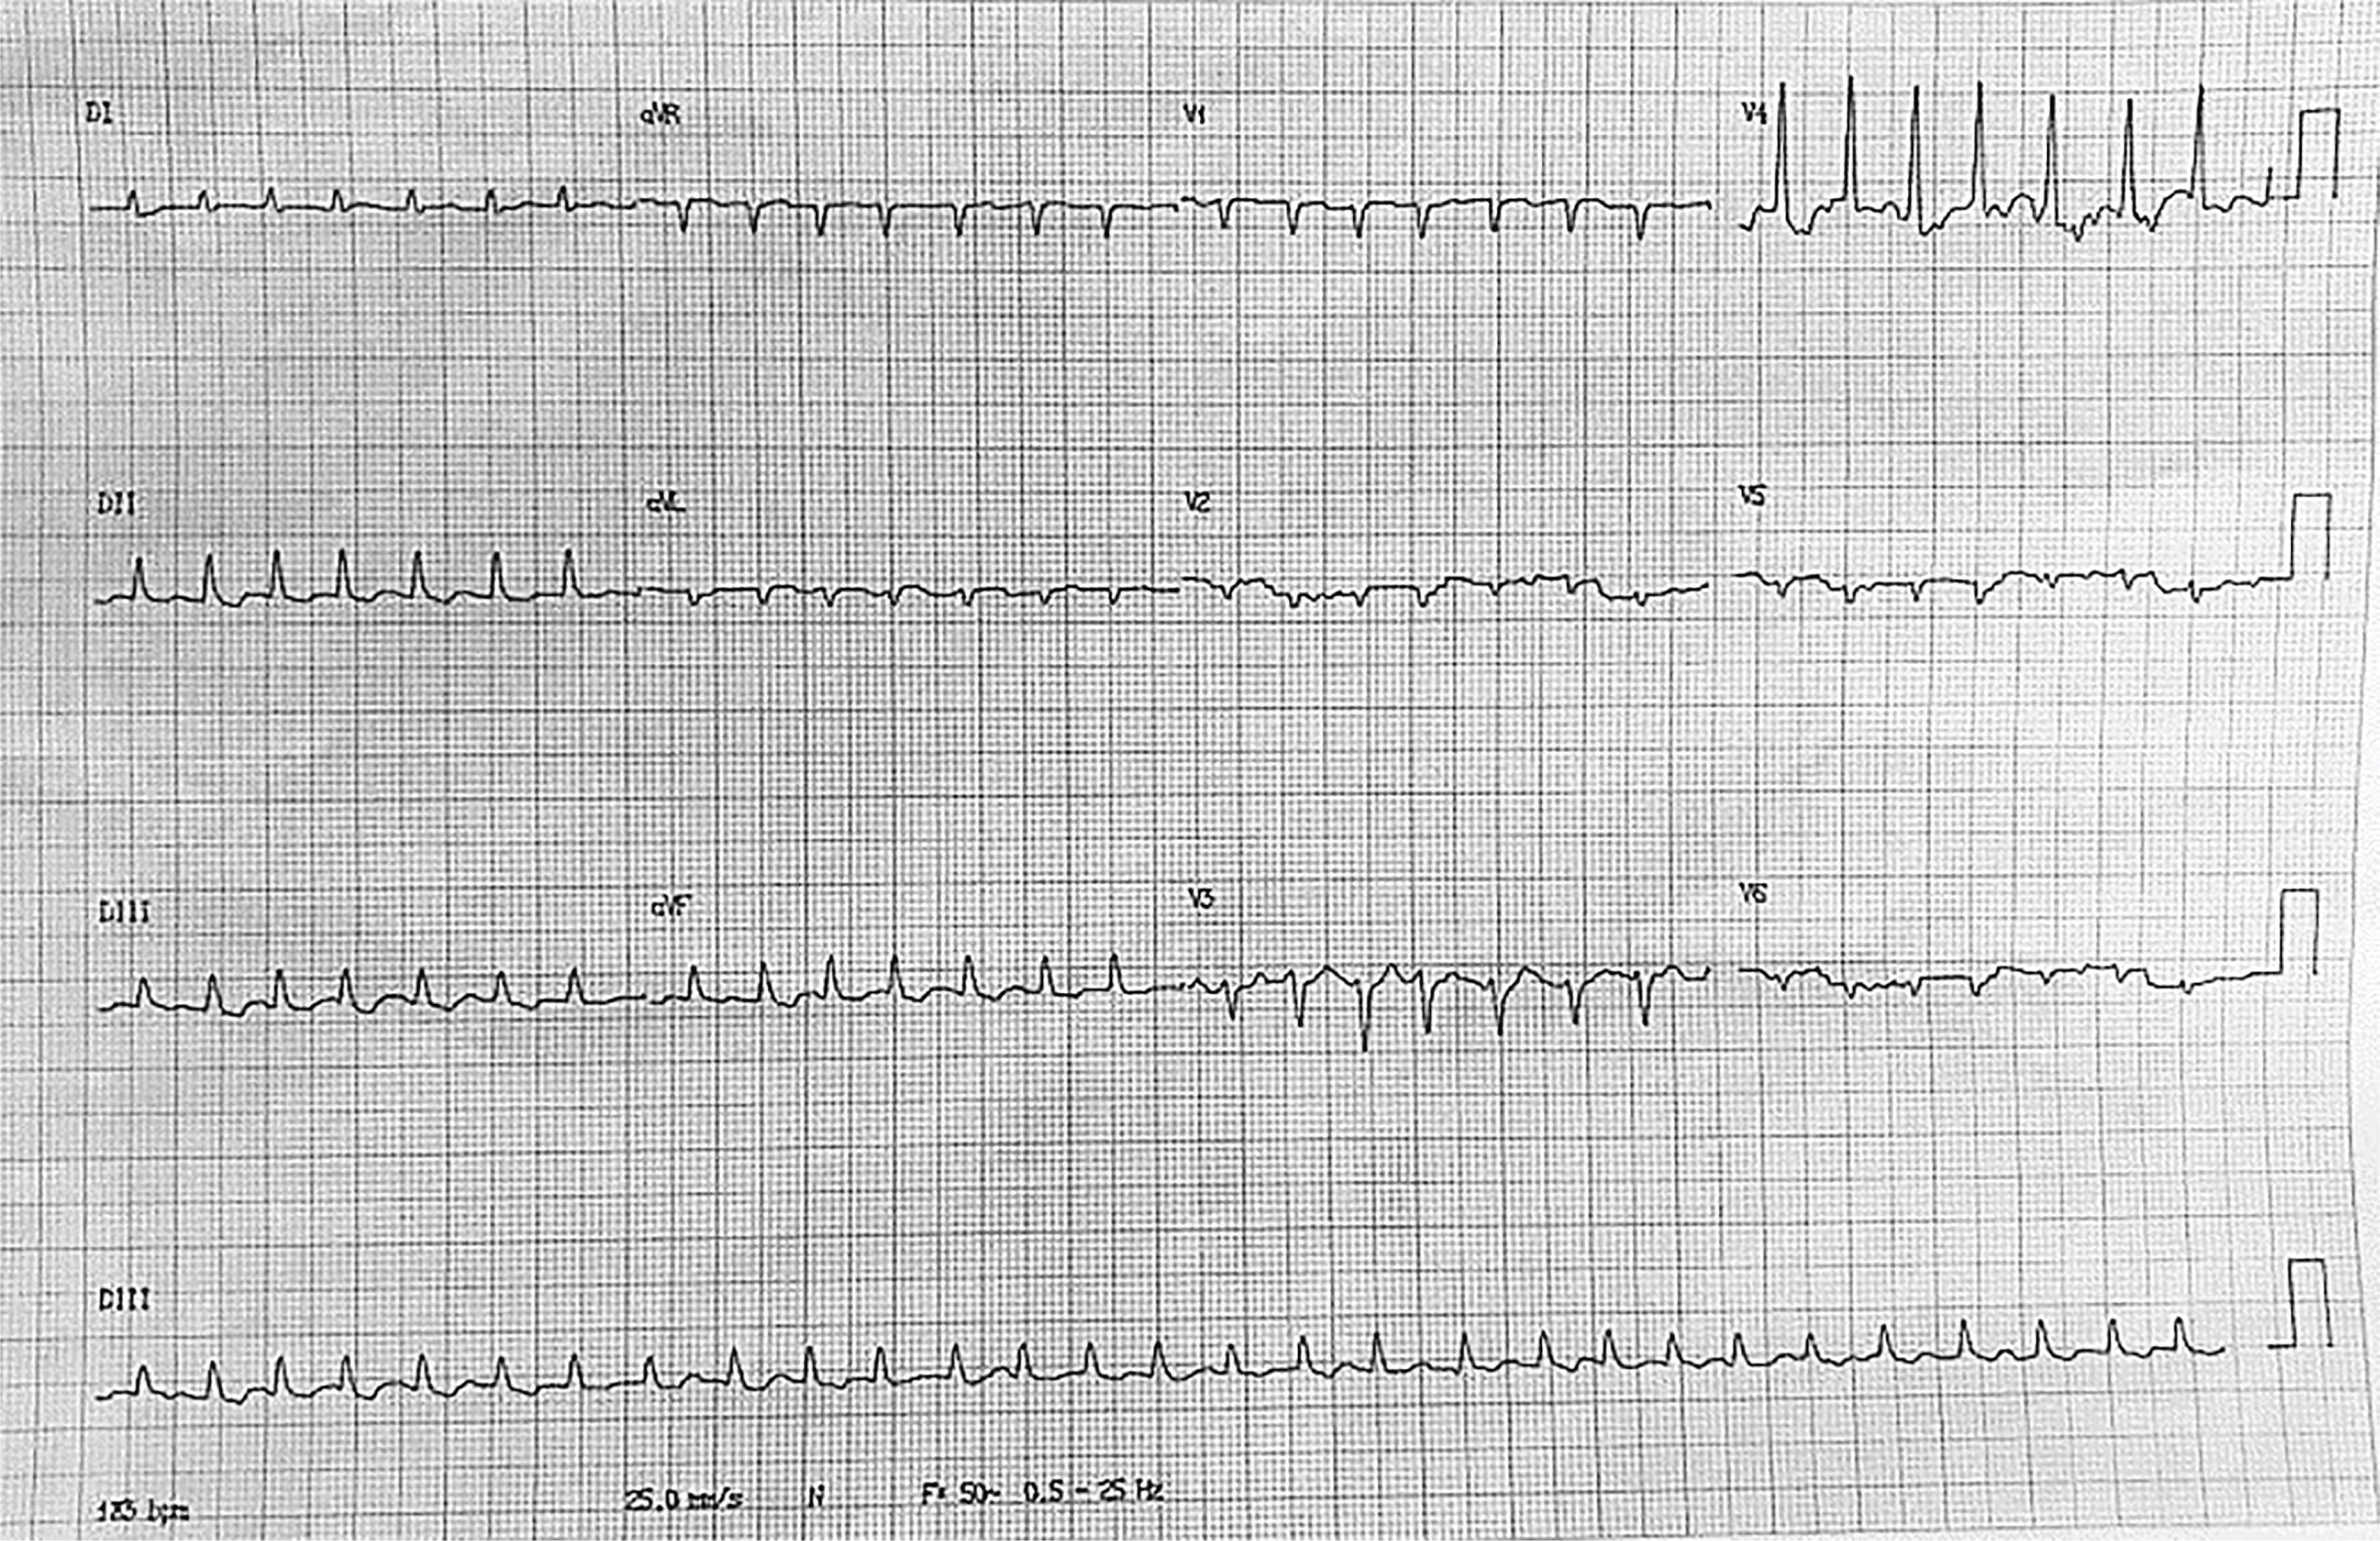 Atrial fibrillation present on the ECG.